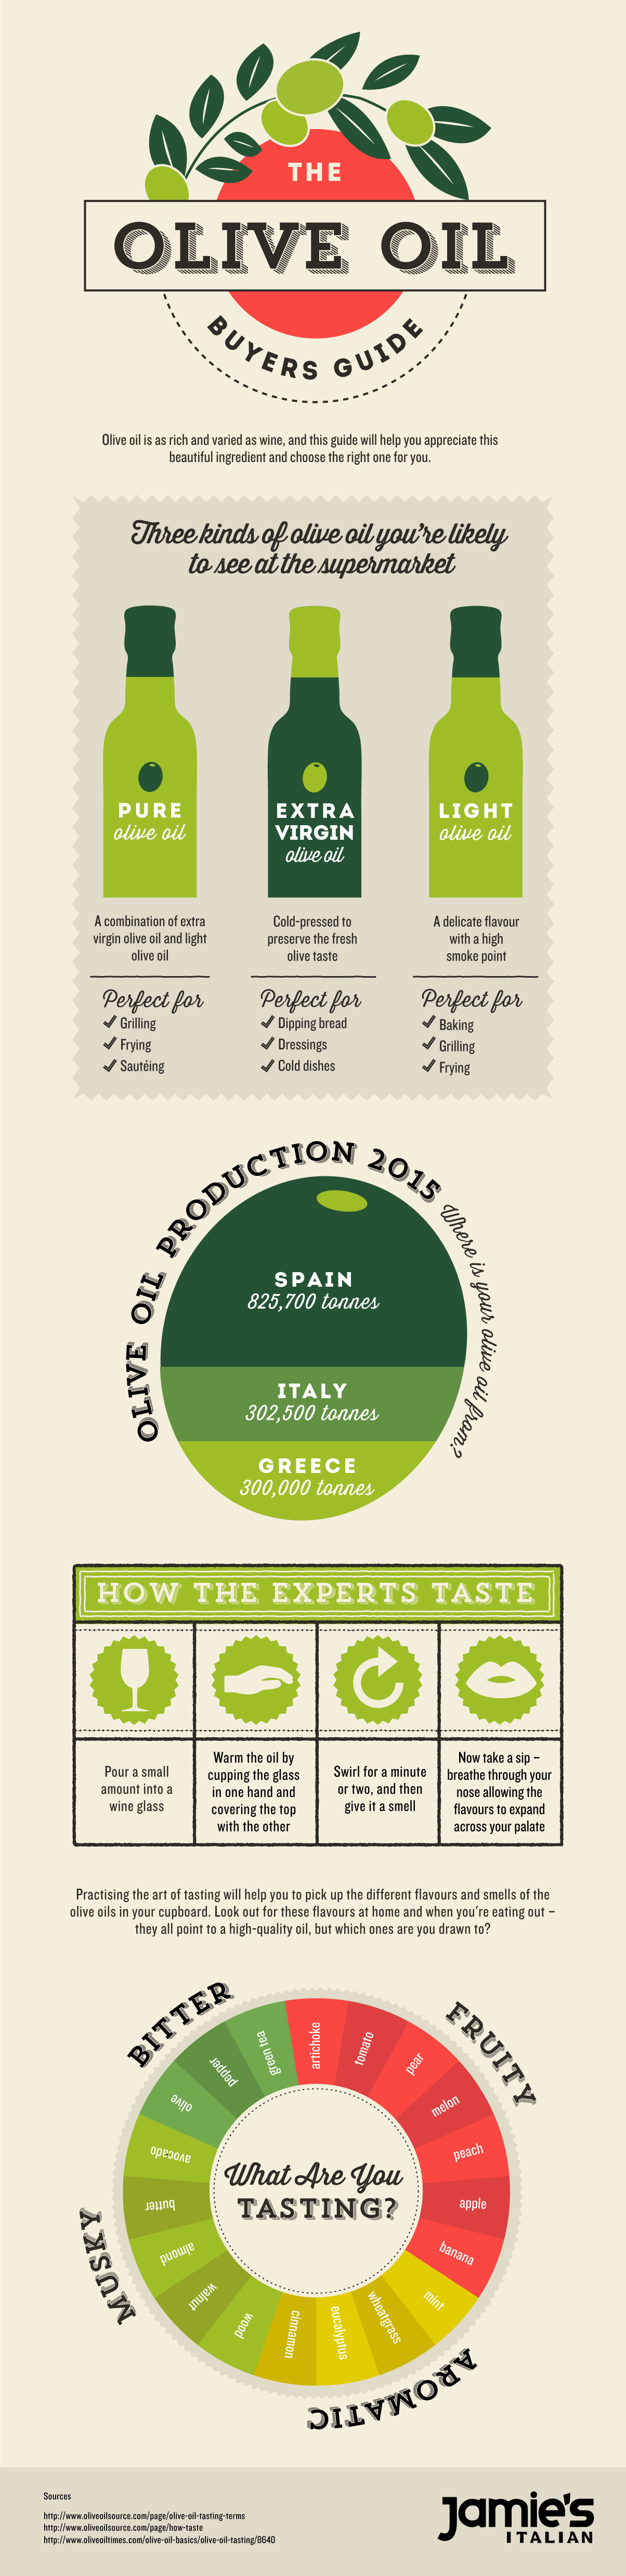 Jamie's Italian Olive Oil Infographic in collaboration with Culinary Travels Blog